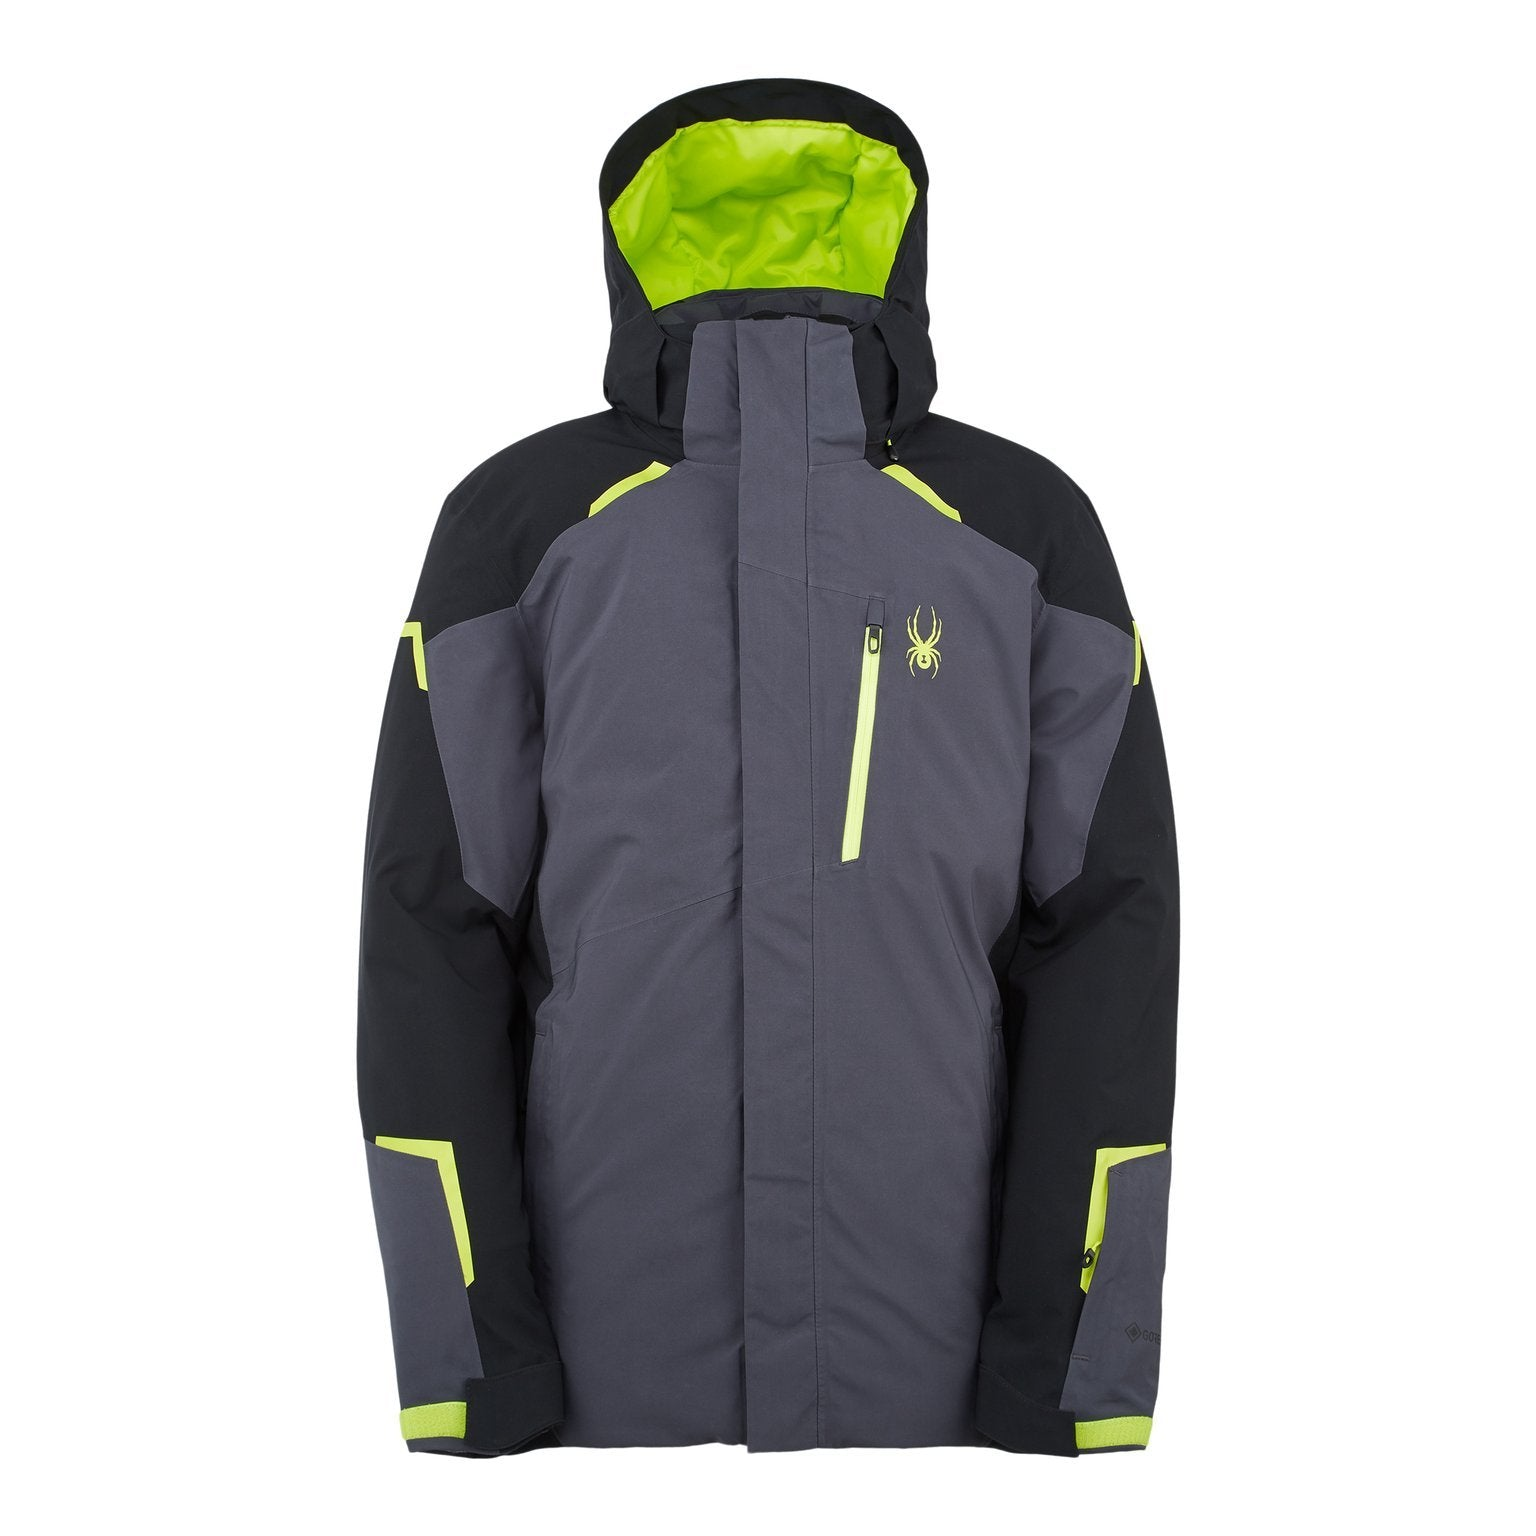 Spyder 2021 Men's COPPER GTX Jacket